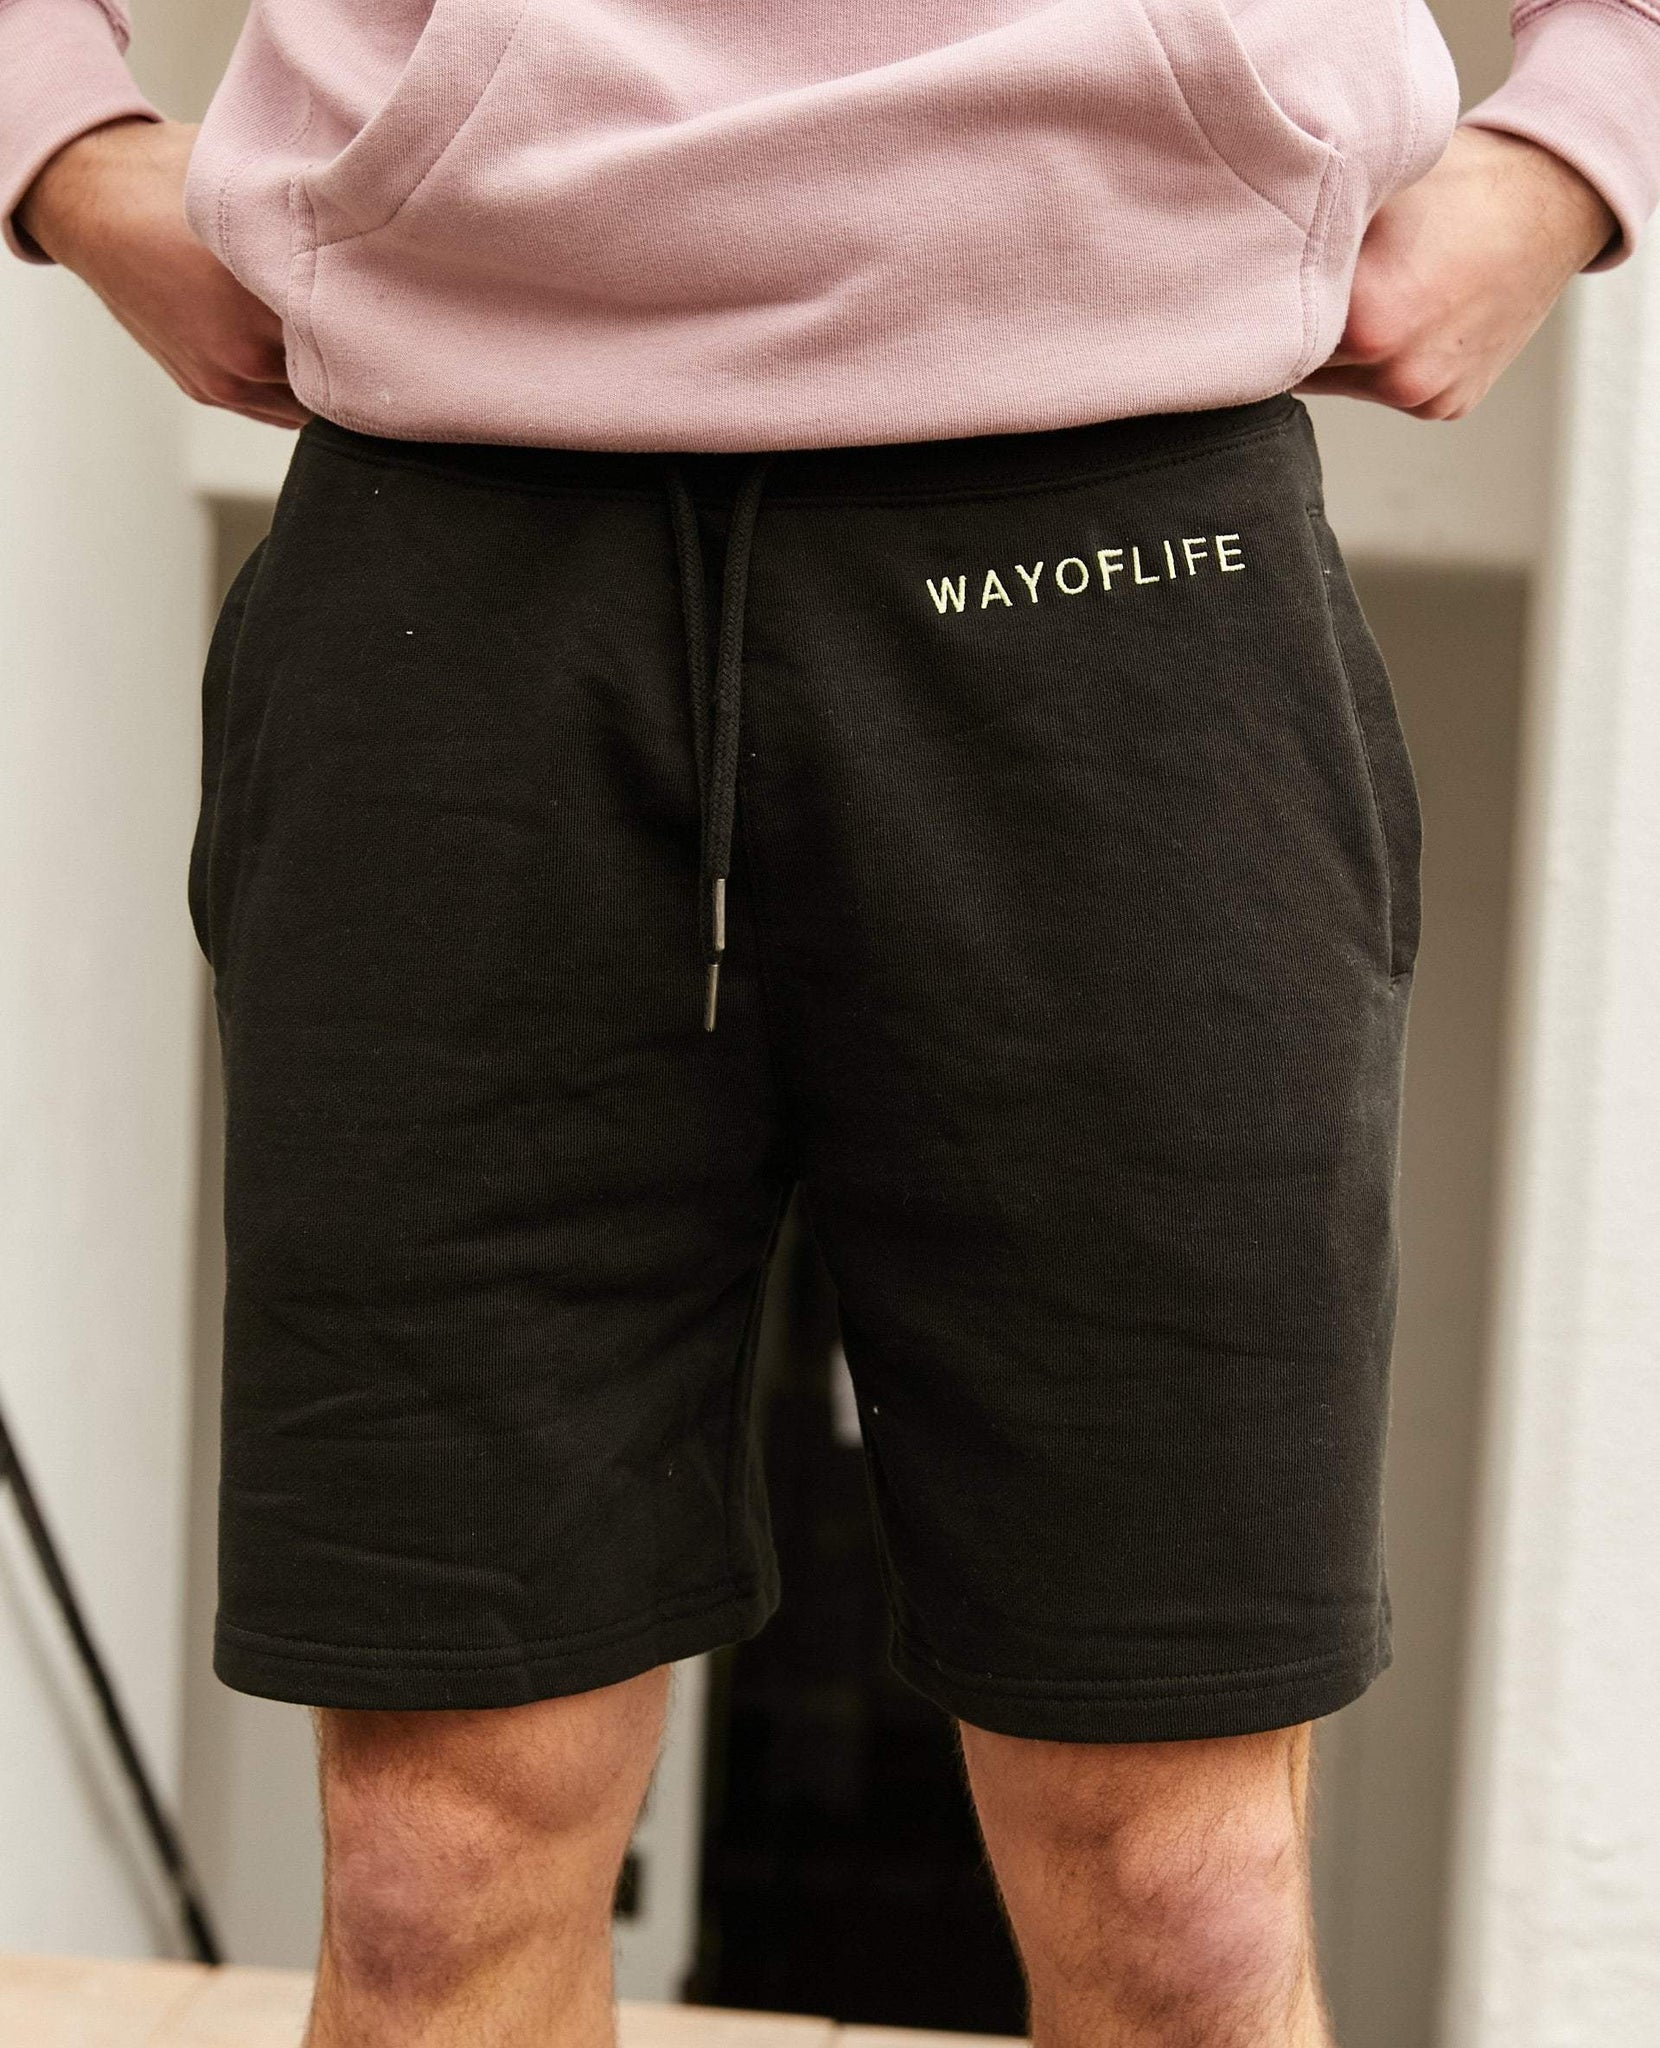 WAY OF LIFE COLLECTION - ACTIVE FOR ALL SWEATSHORT